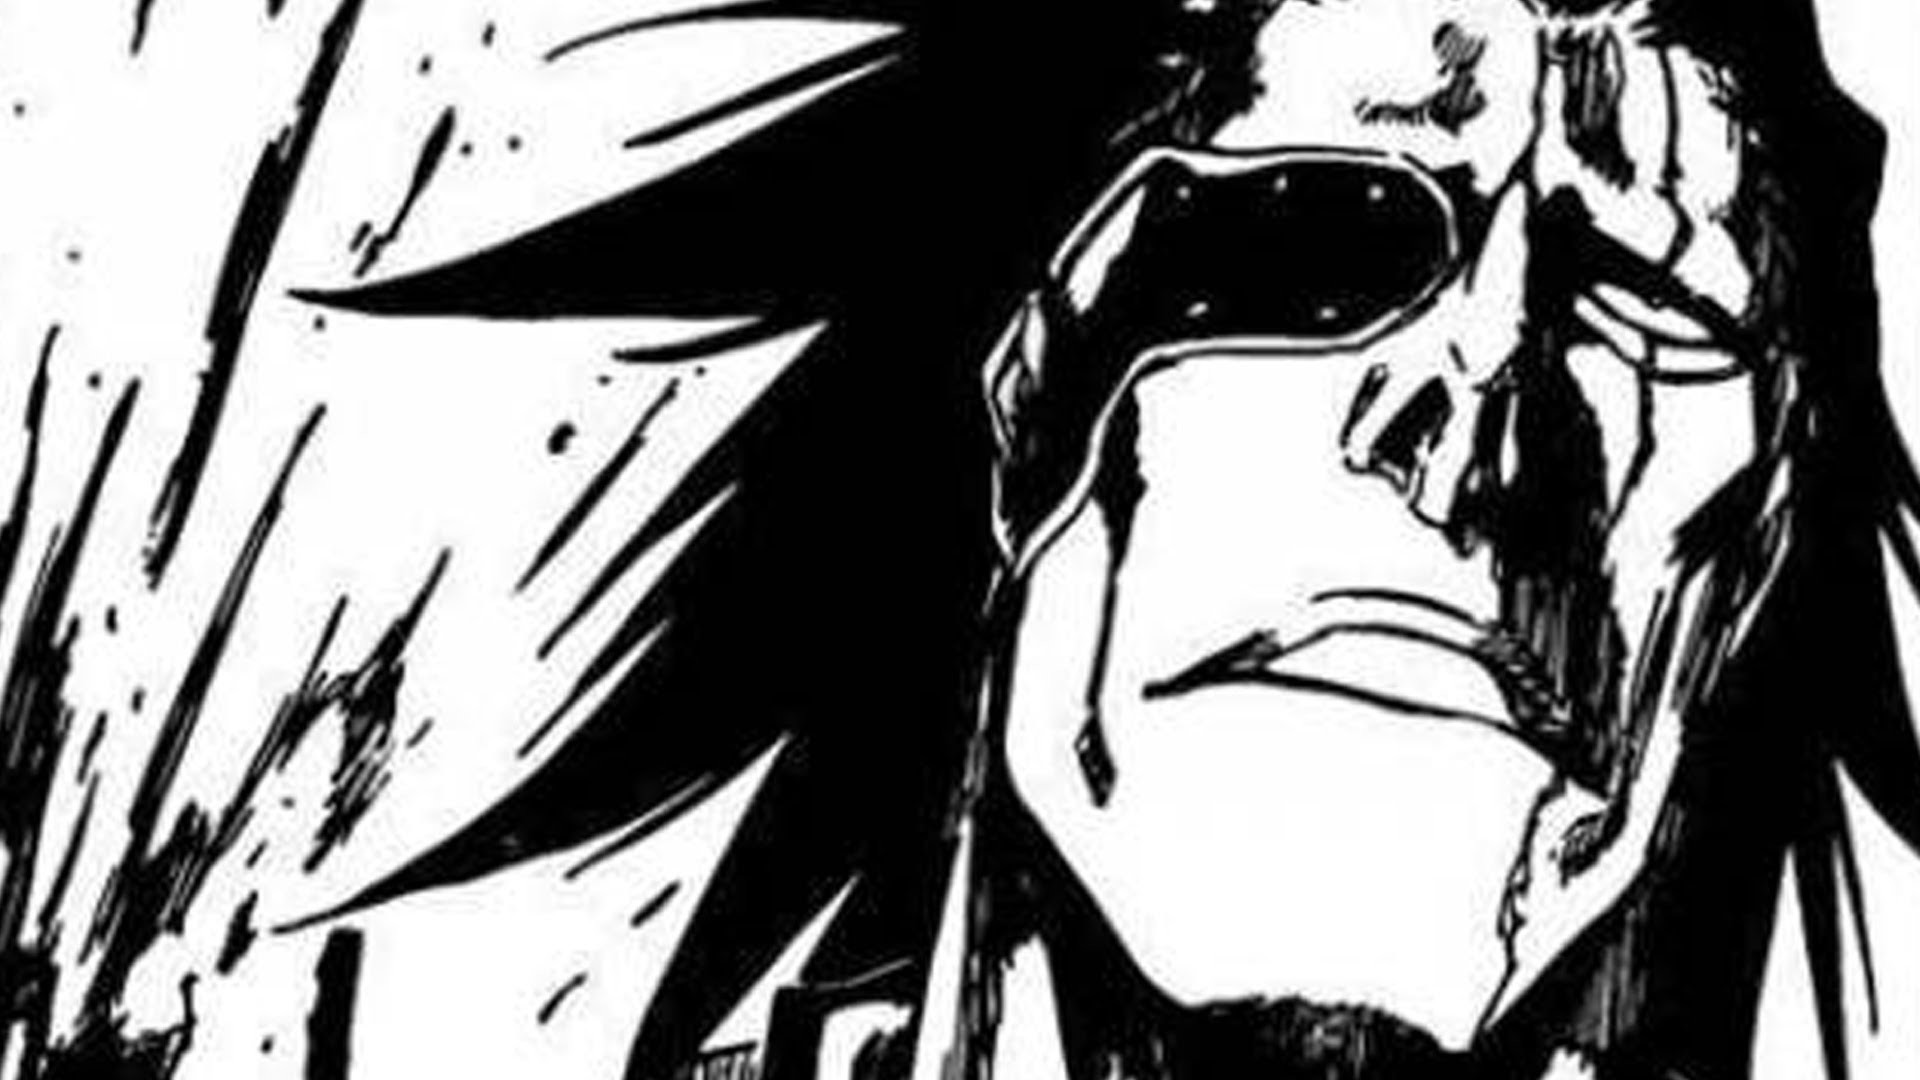 1920x1080 REVIEW: Bleach 463 Manga Chapter- Zaraki Kenpachi Is BEAST!!! - YouTube